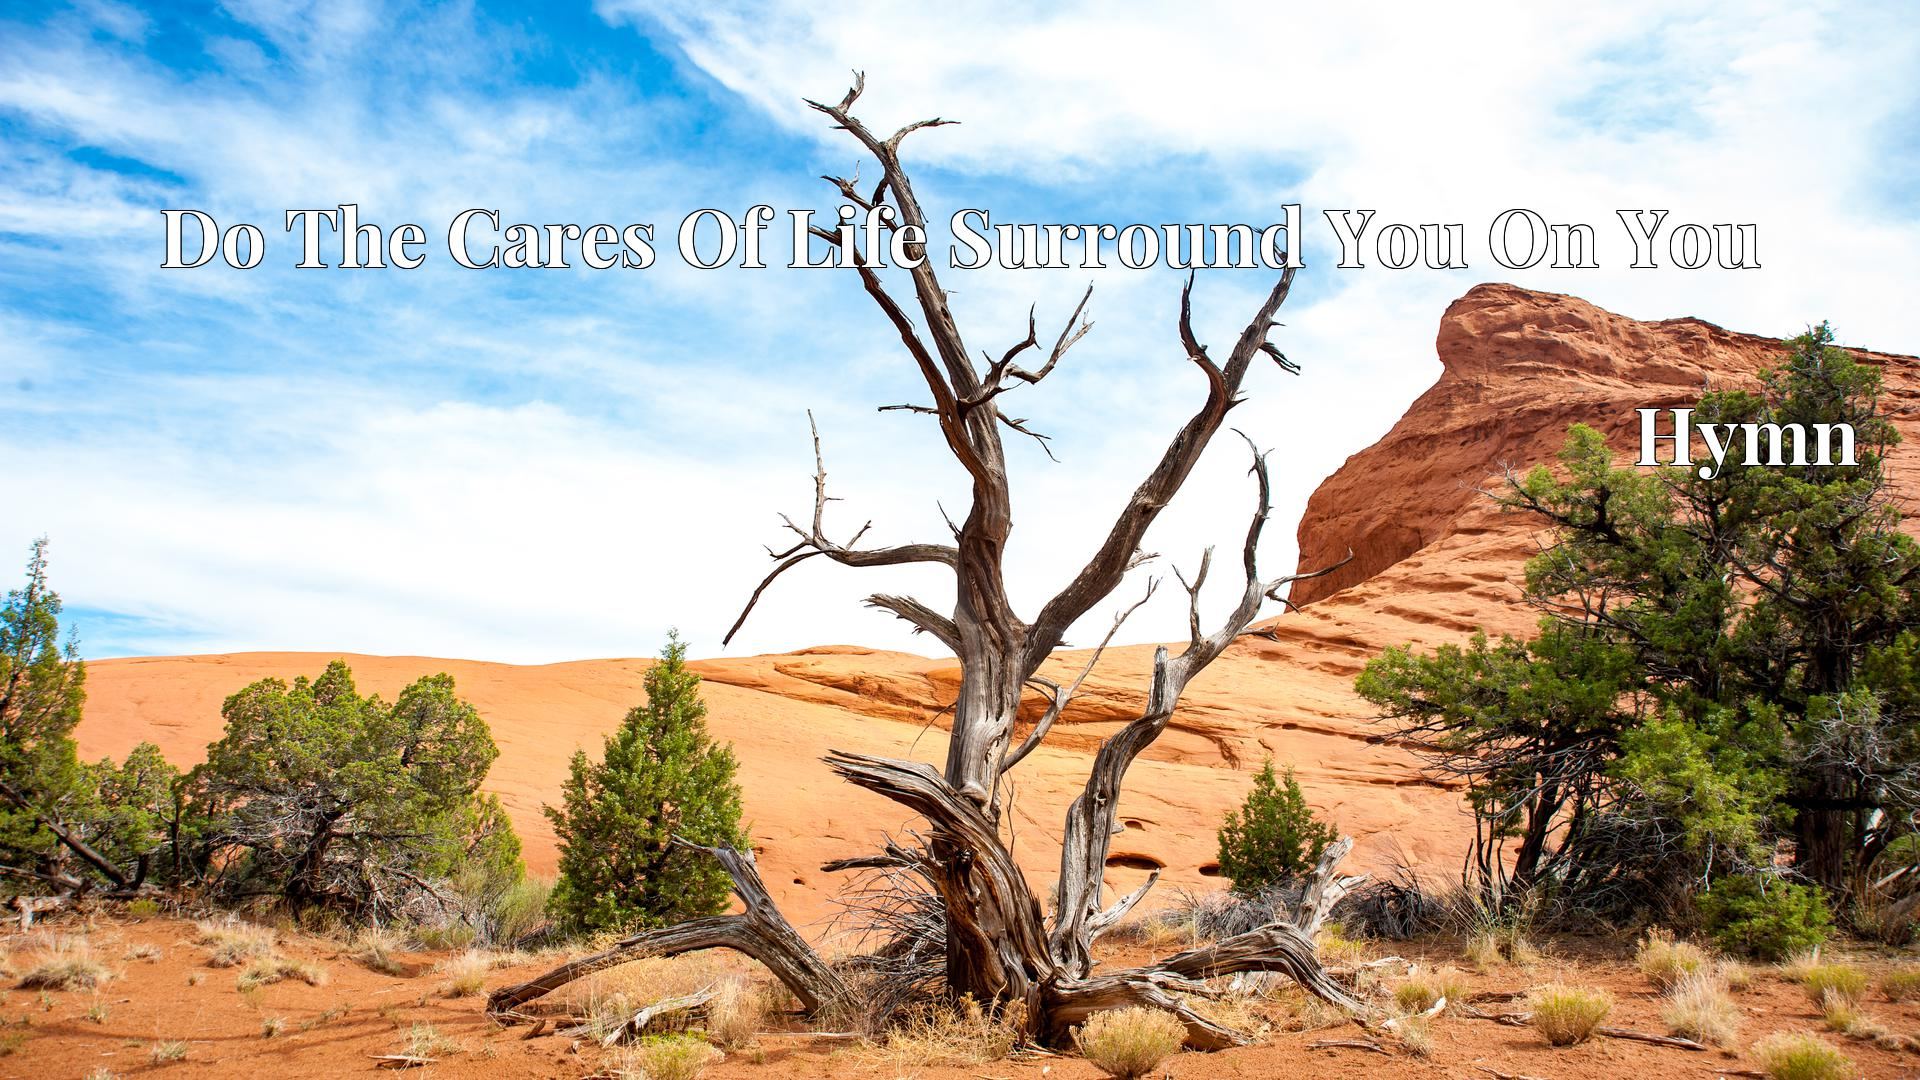 Do The Cares Of Life Surround You On You - Hymn